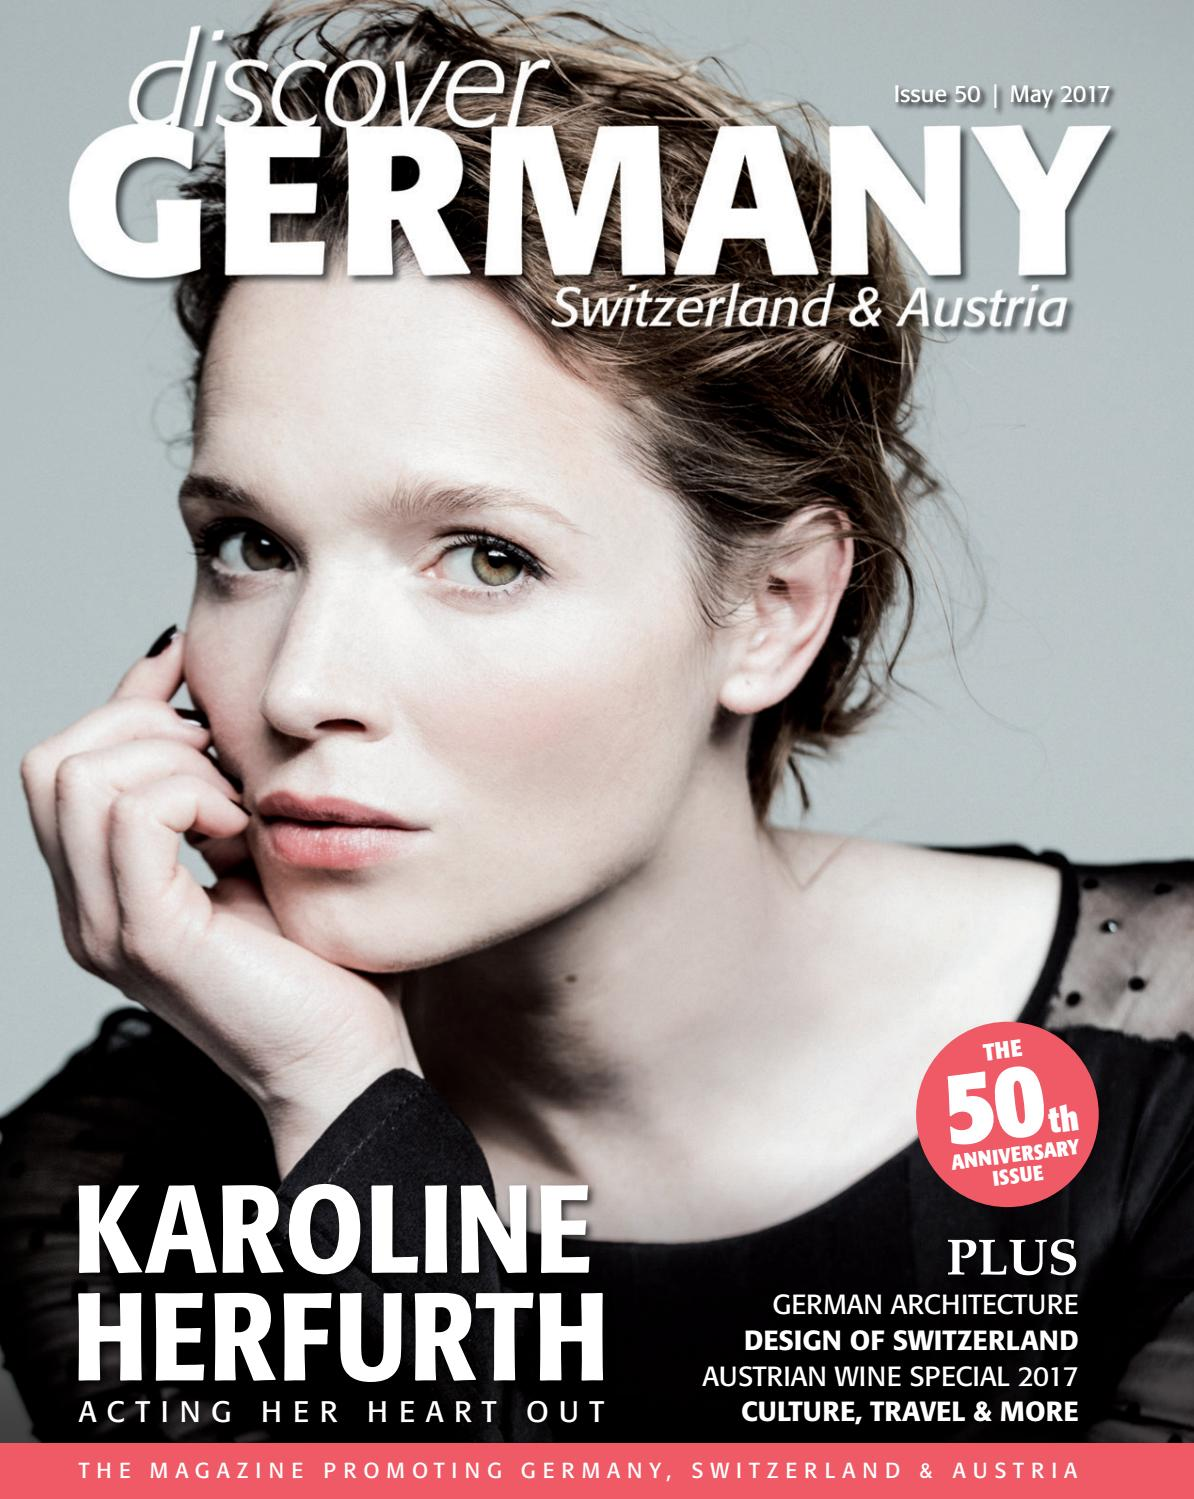 Anna Biella Movie discover germany, issue 50, may 2017scan group - issuu